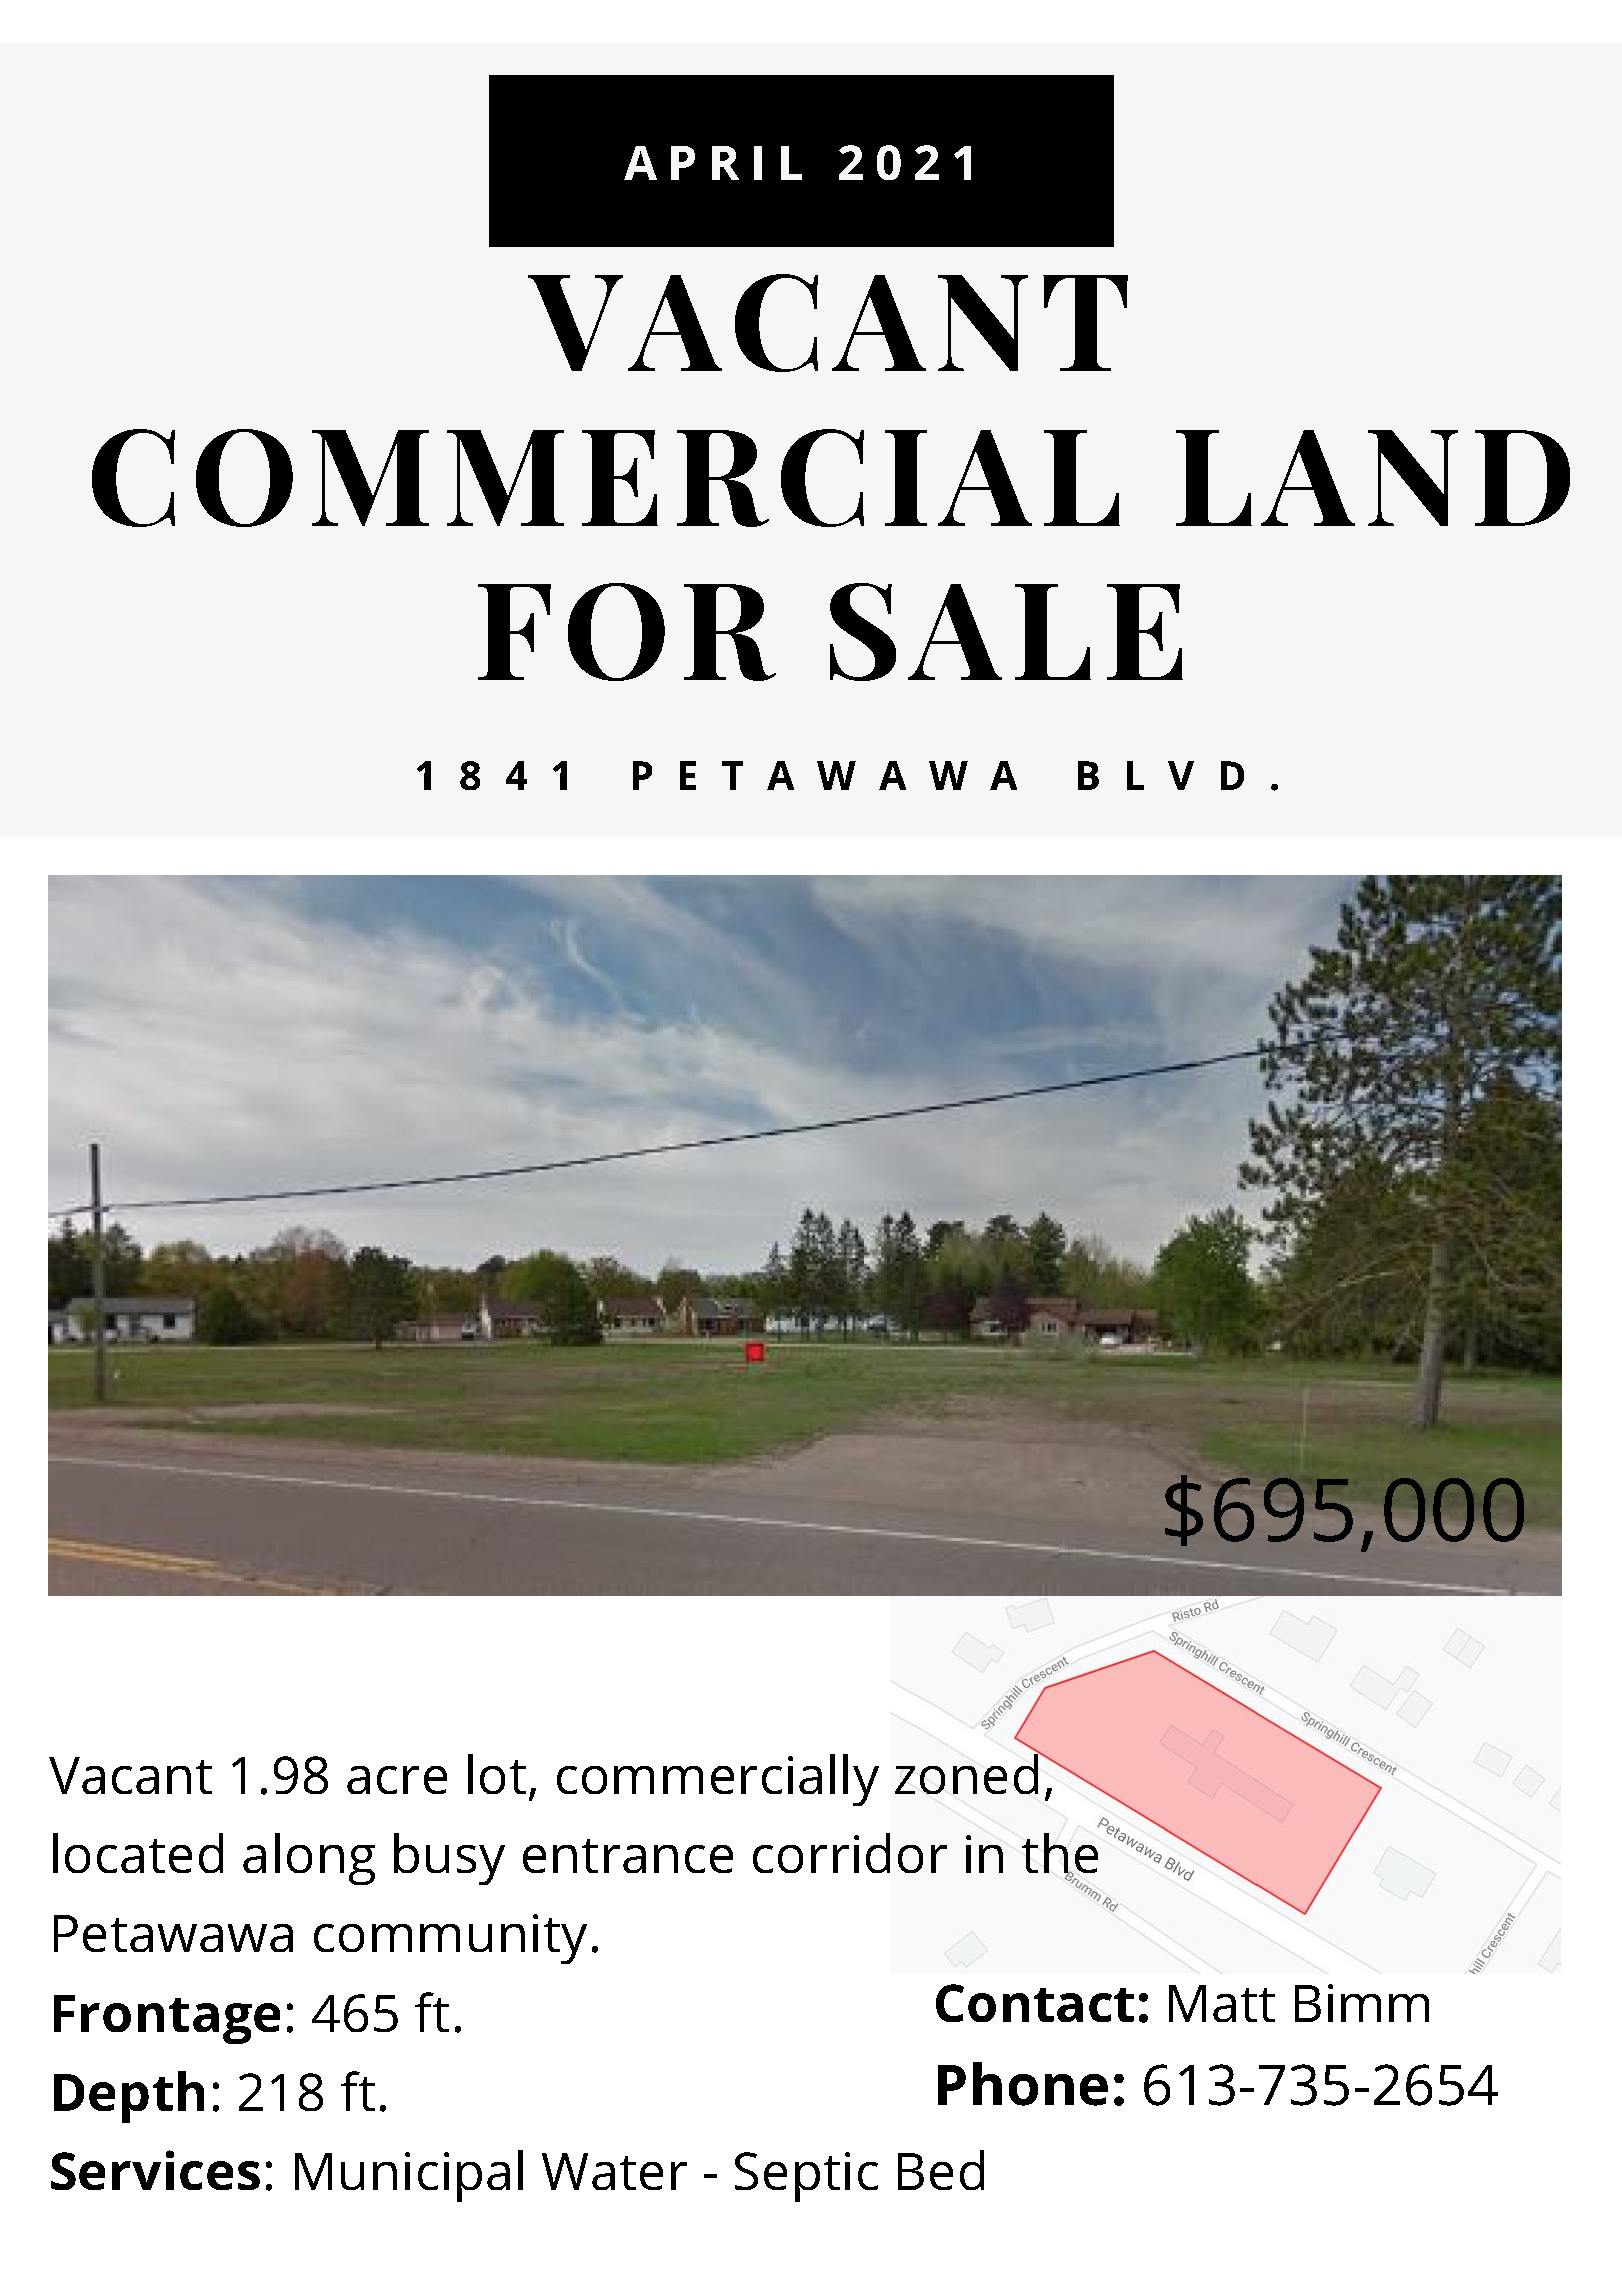 a retail sales listing for vacant commercial land in Town of Petawawa